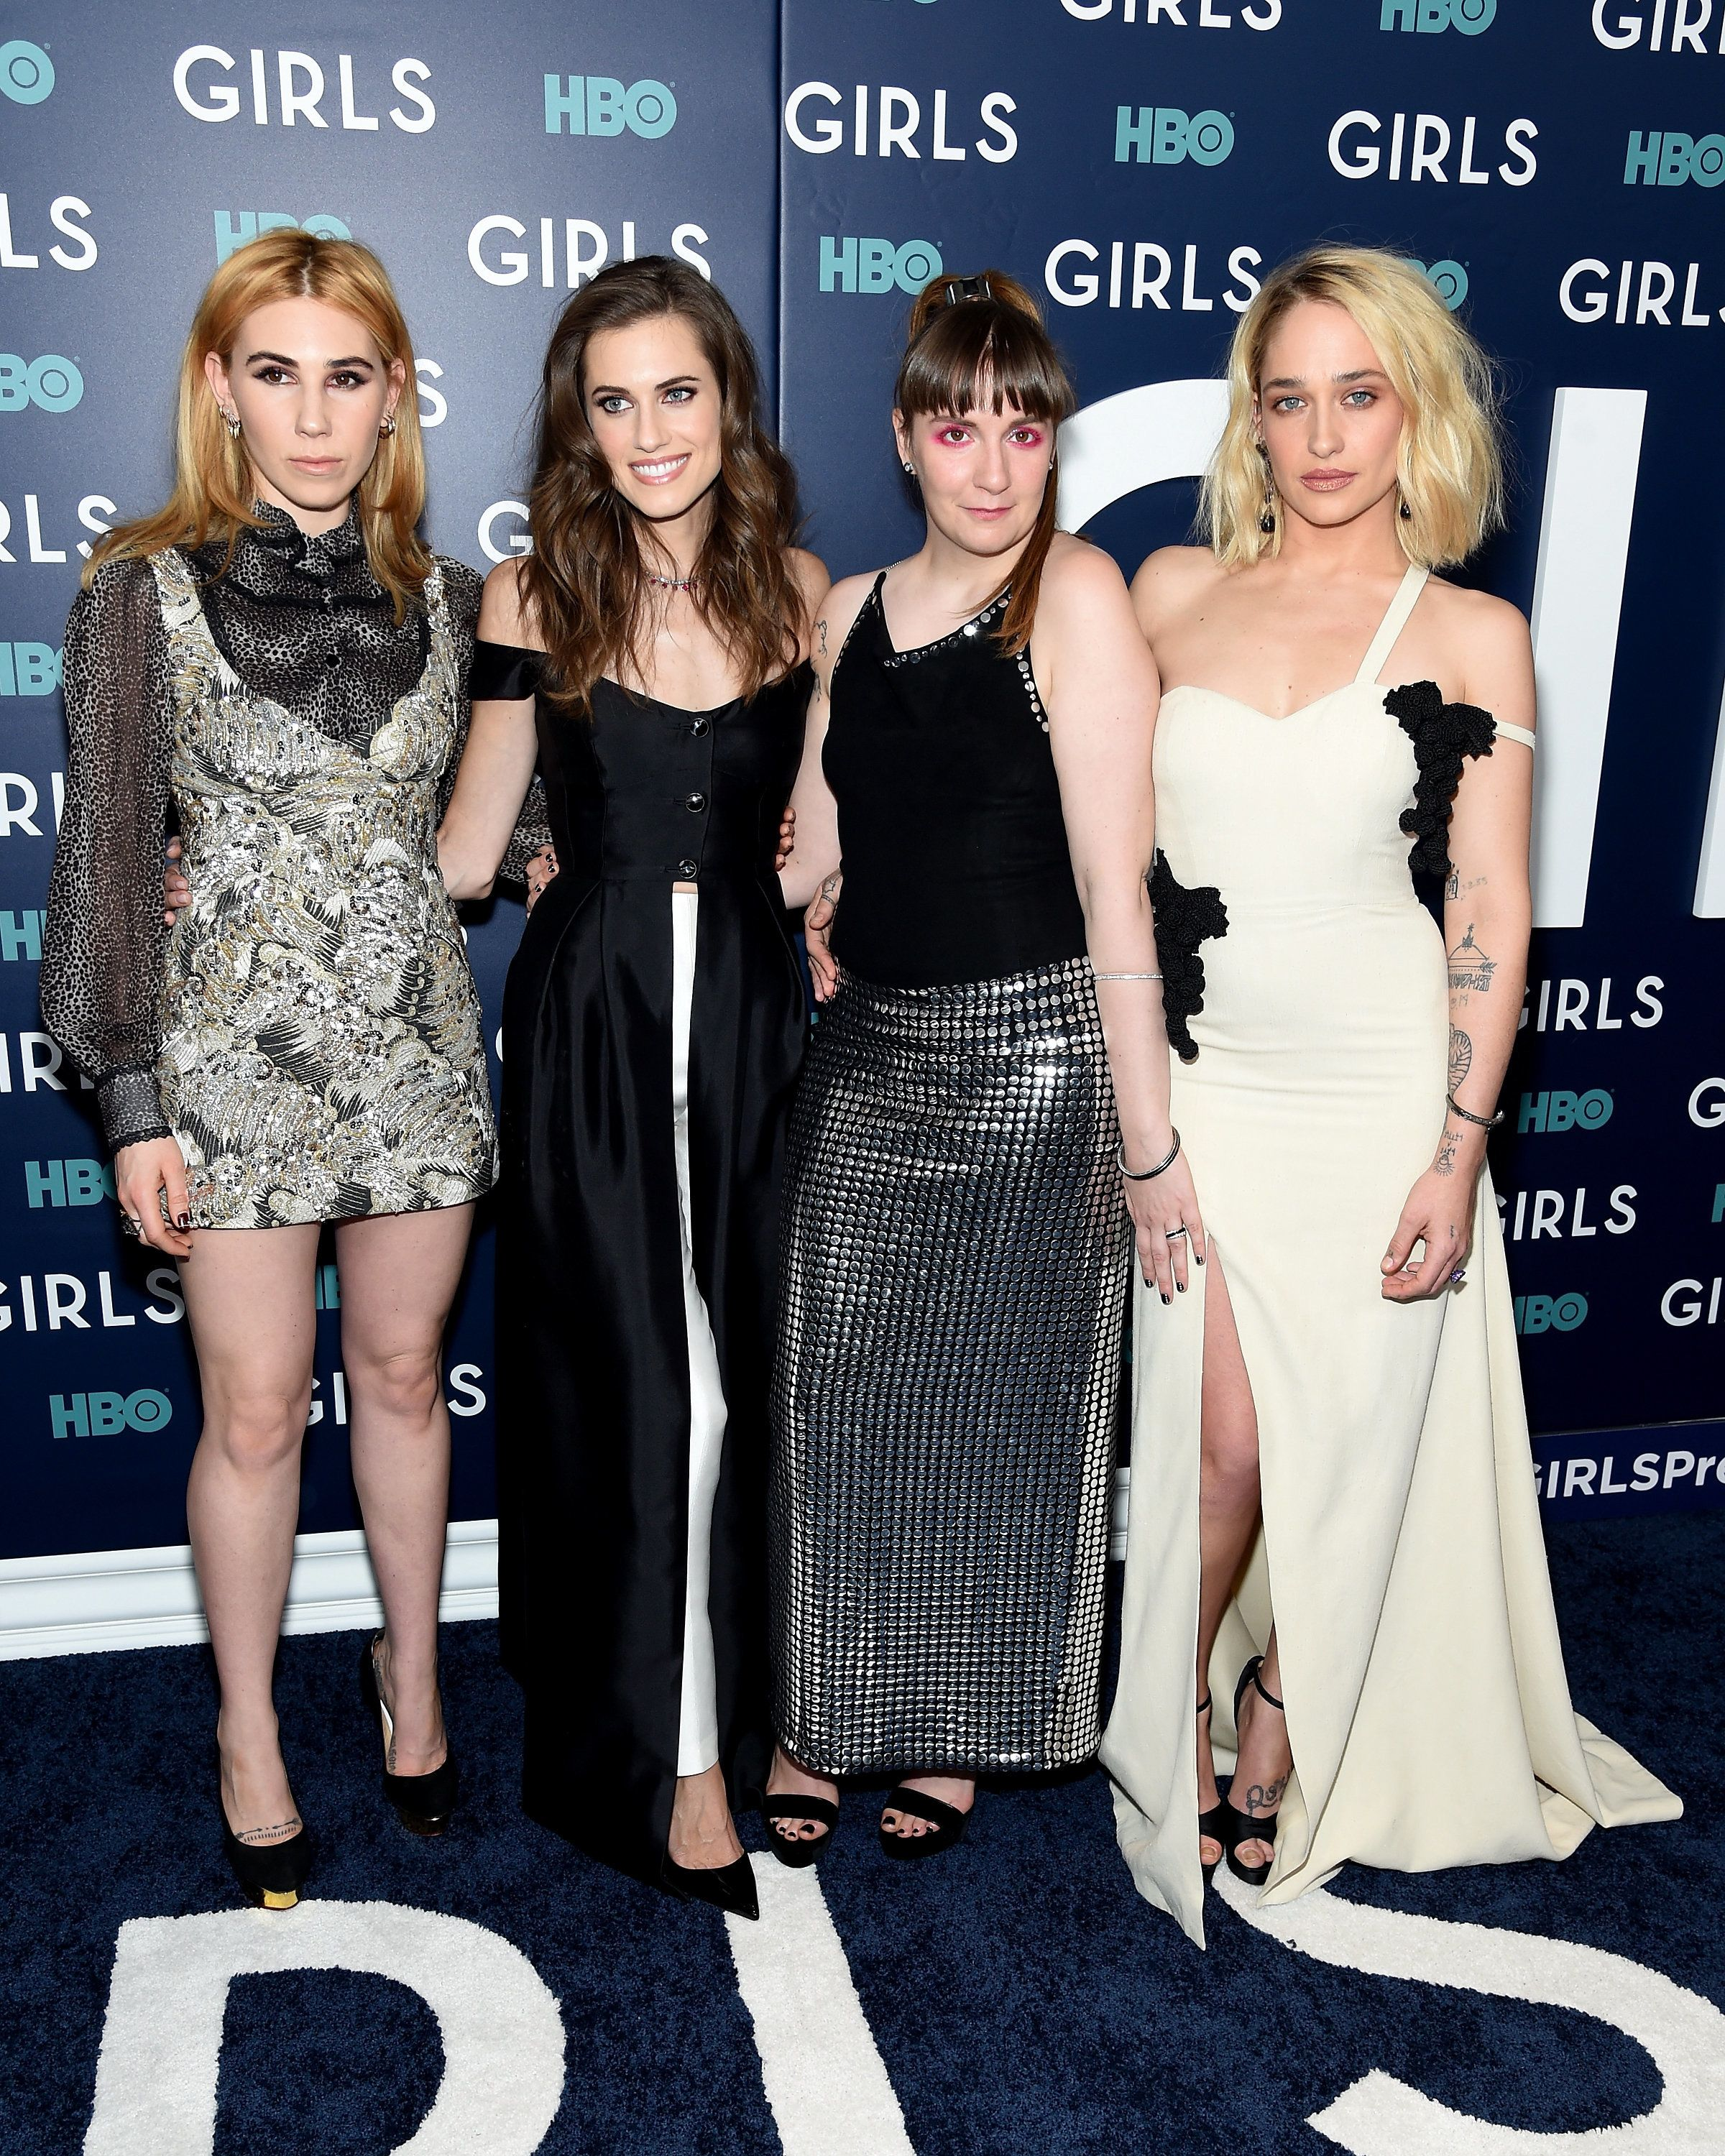 Zosia Mamet, Allison Williams, Lena Dunham and Jemima Kirke